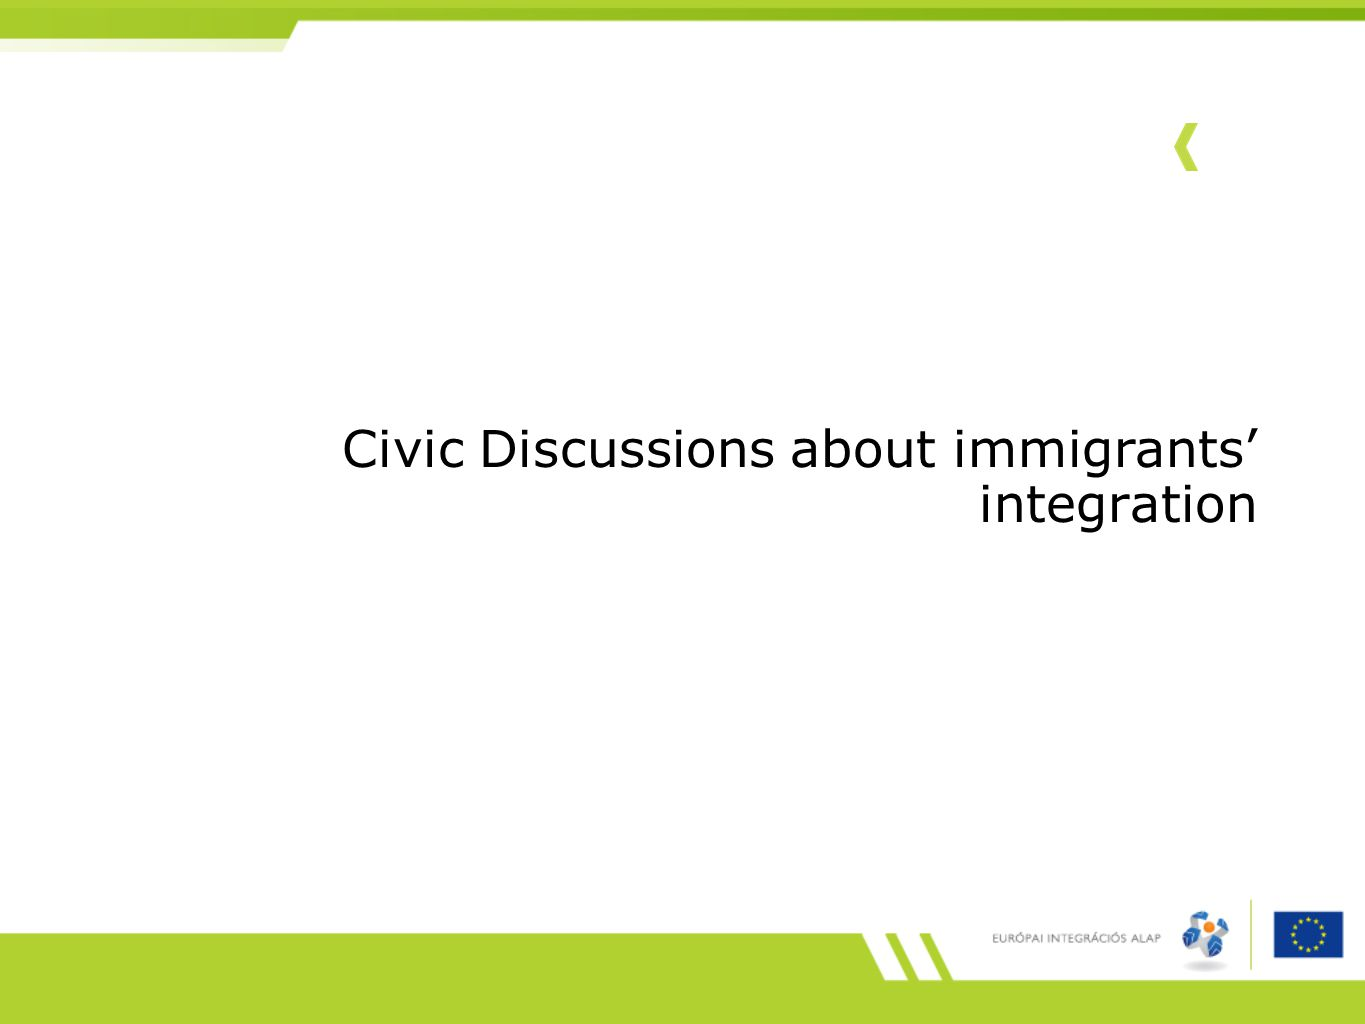 Civic Discussions about immigrants' integration